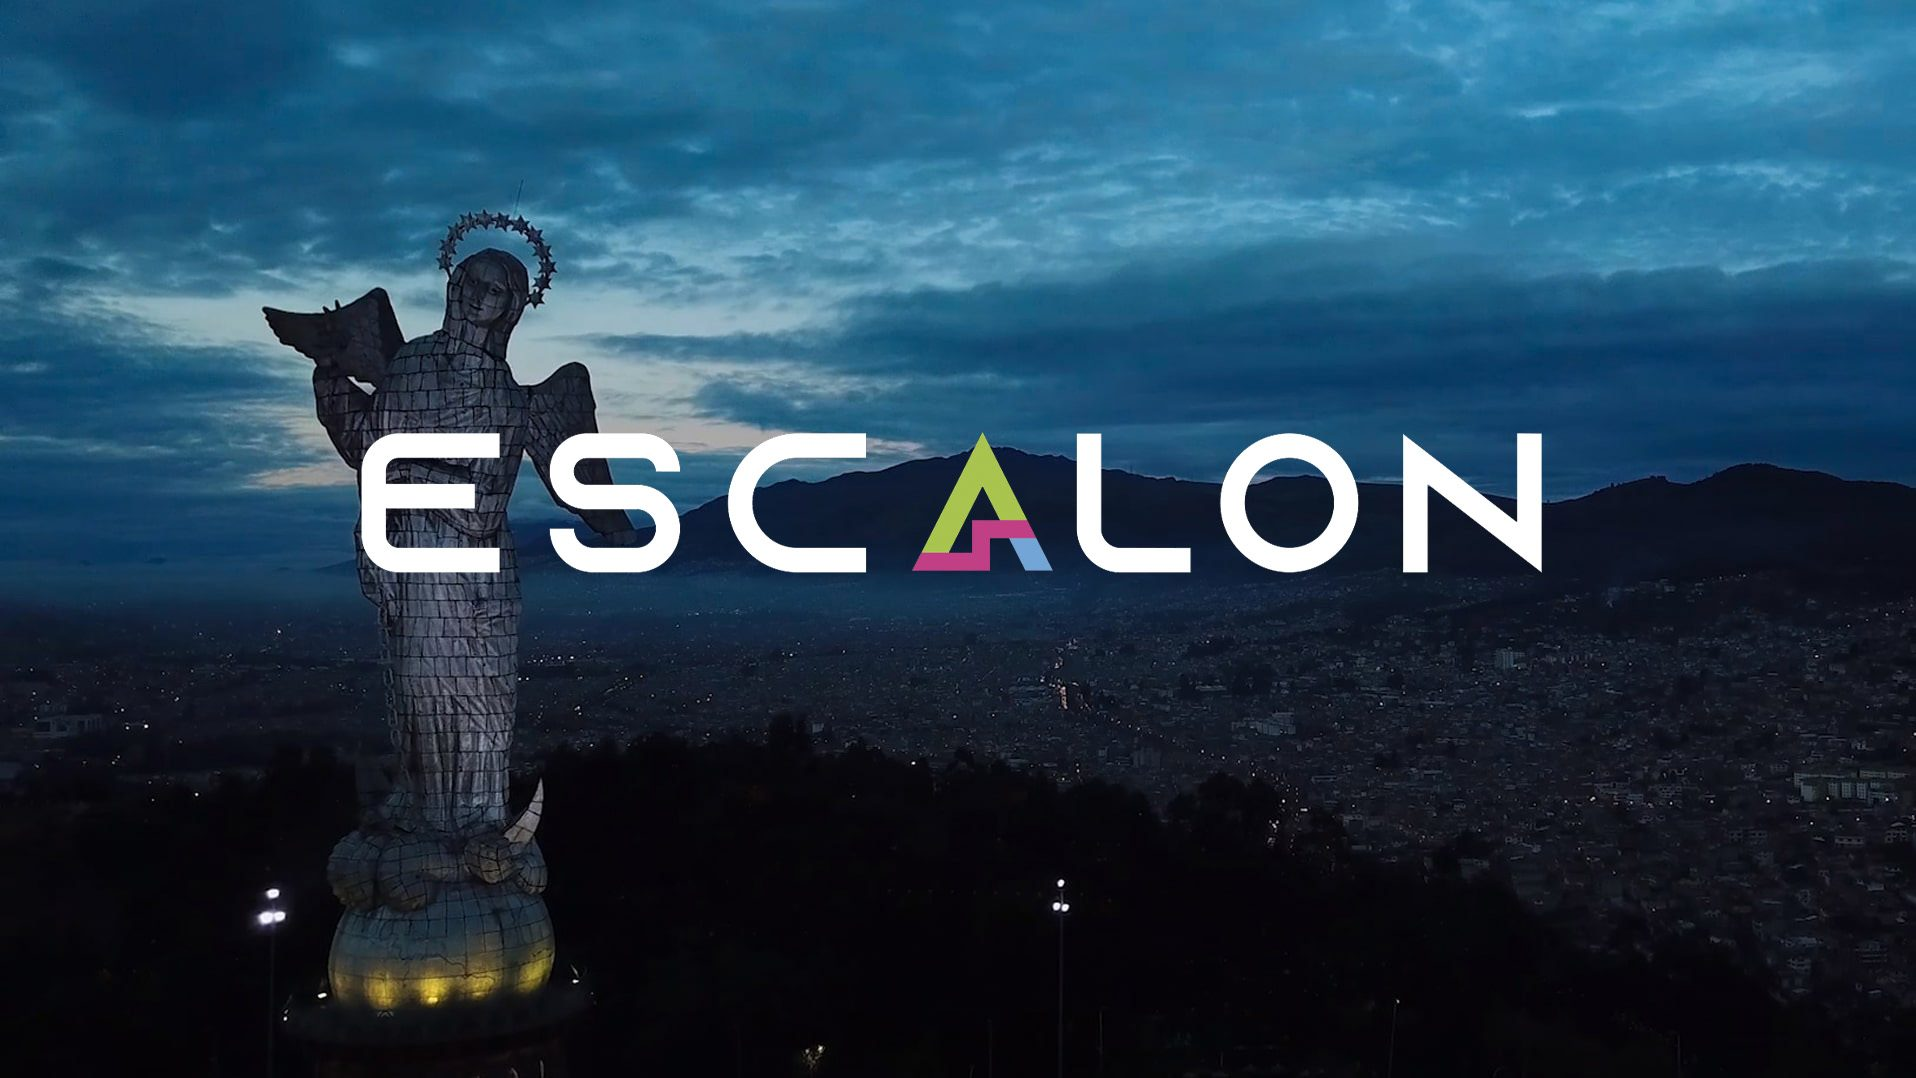 ESCALON LOGO.jpg